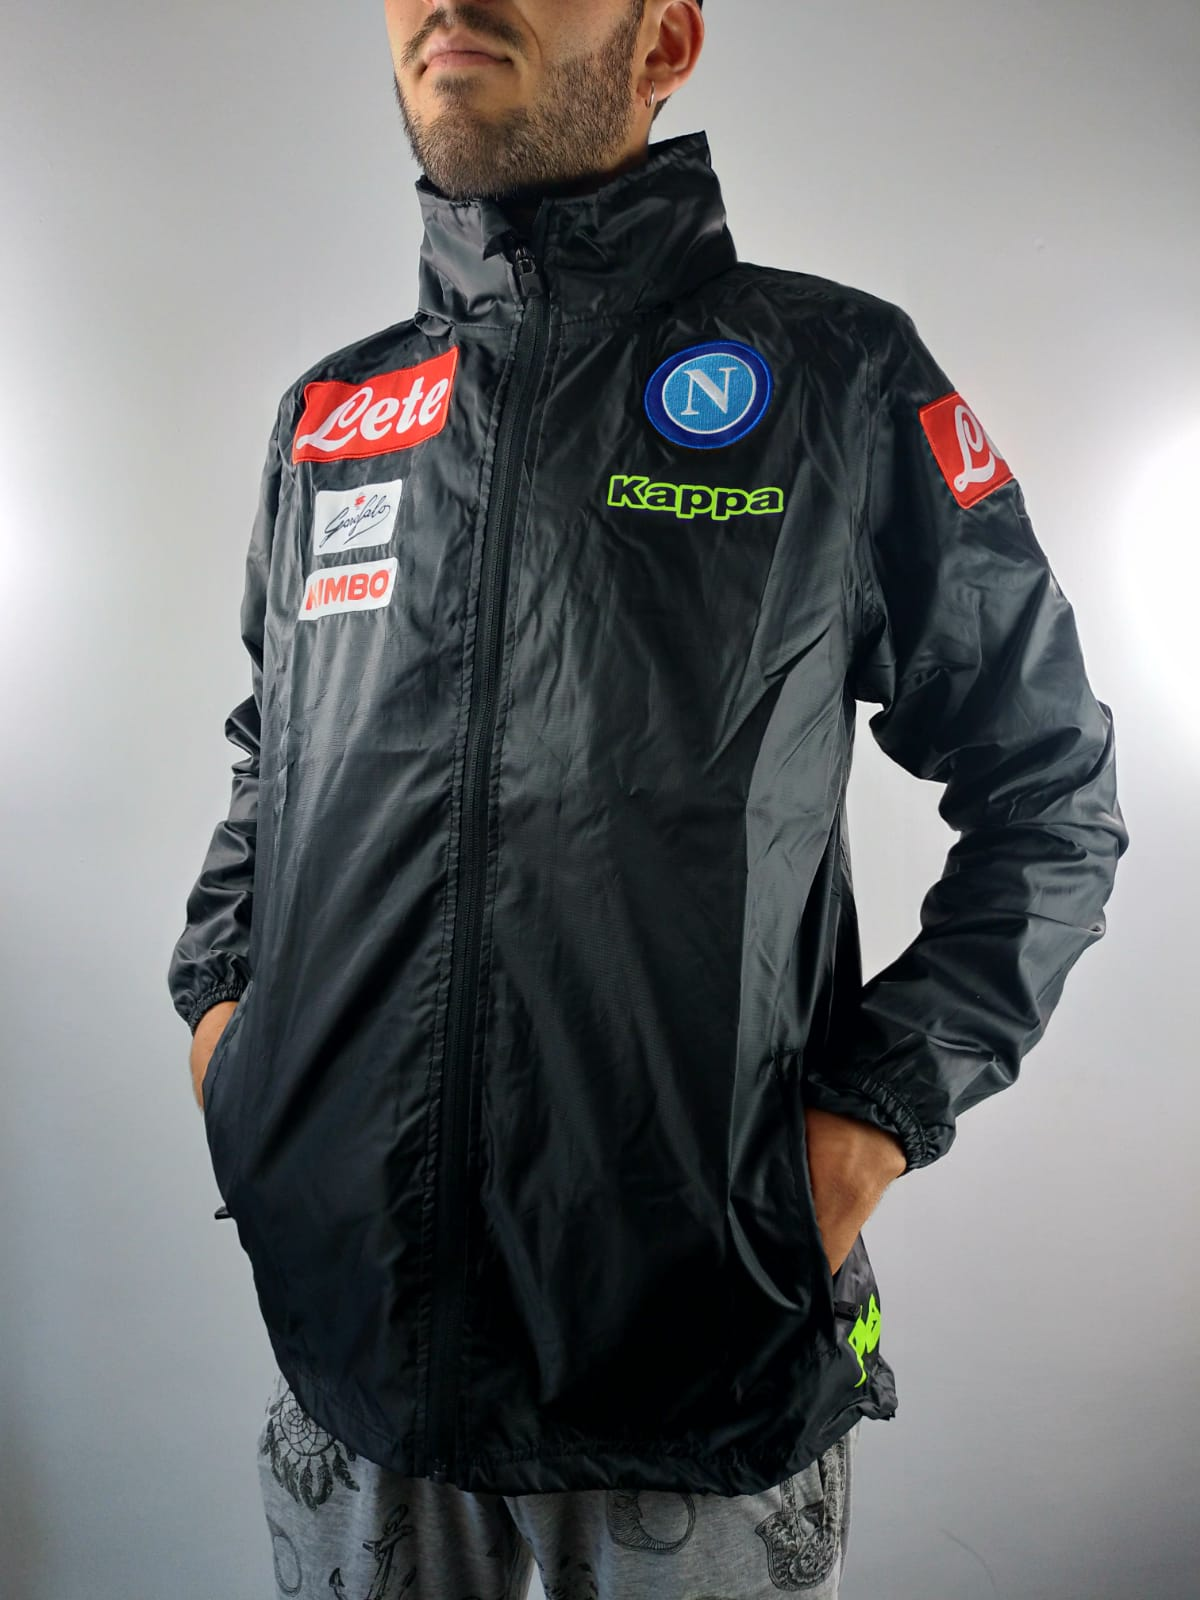 3f779a703 SSC Napoli Naples Kappa Wind Rain Jacket 2018 19 Grey k-way ...